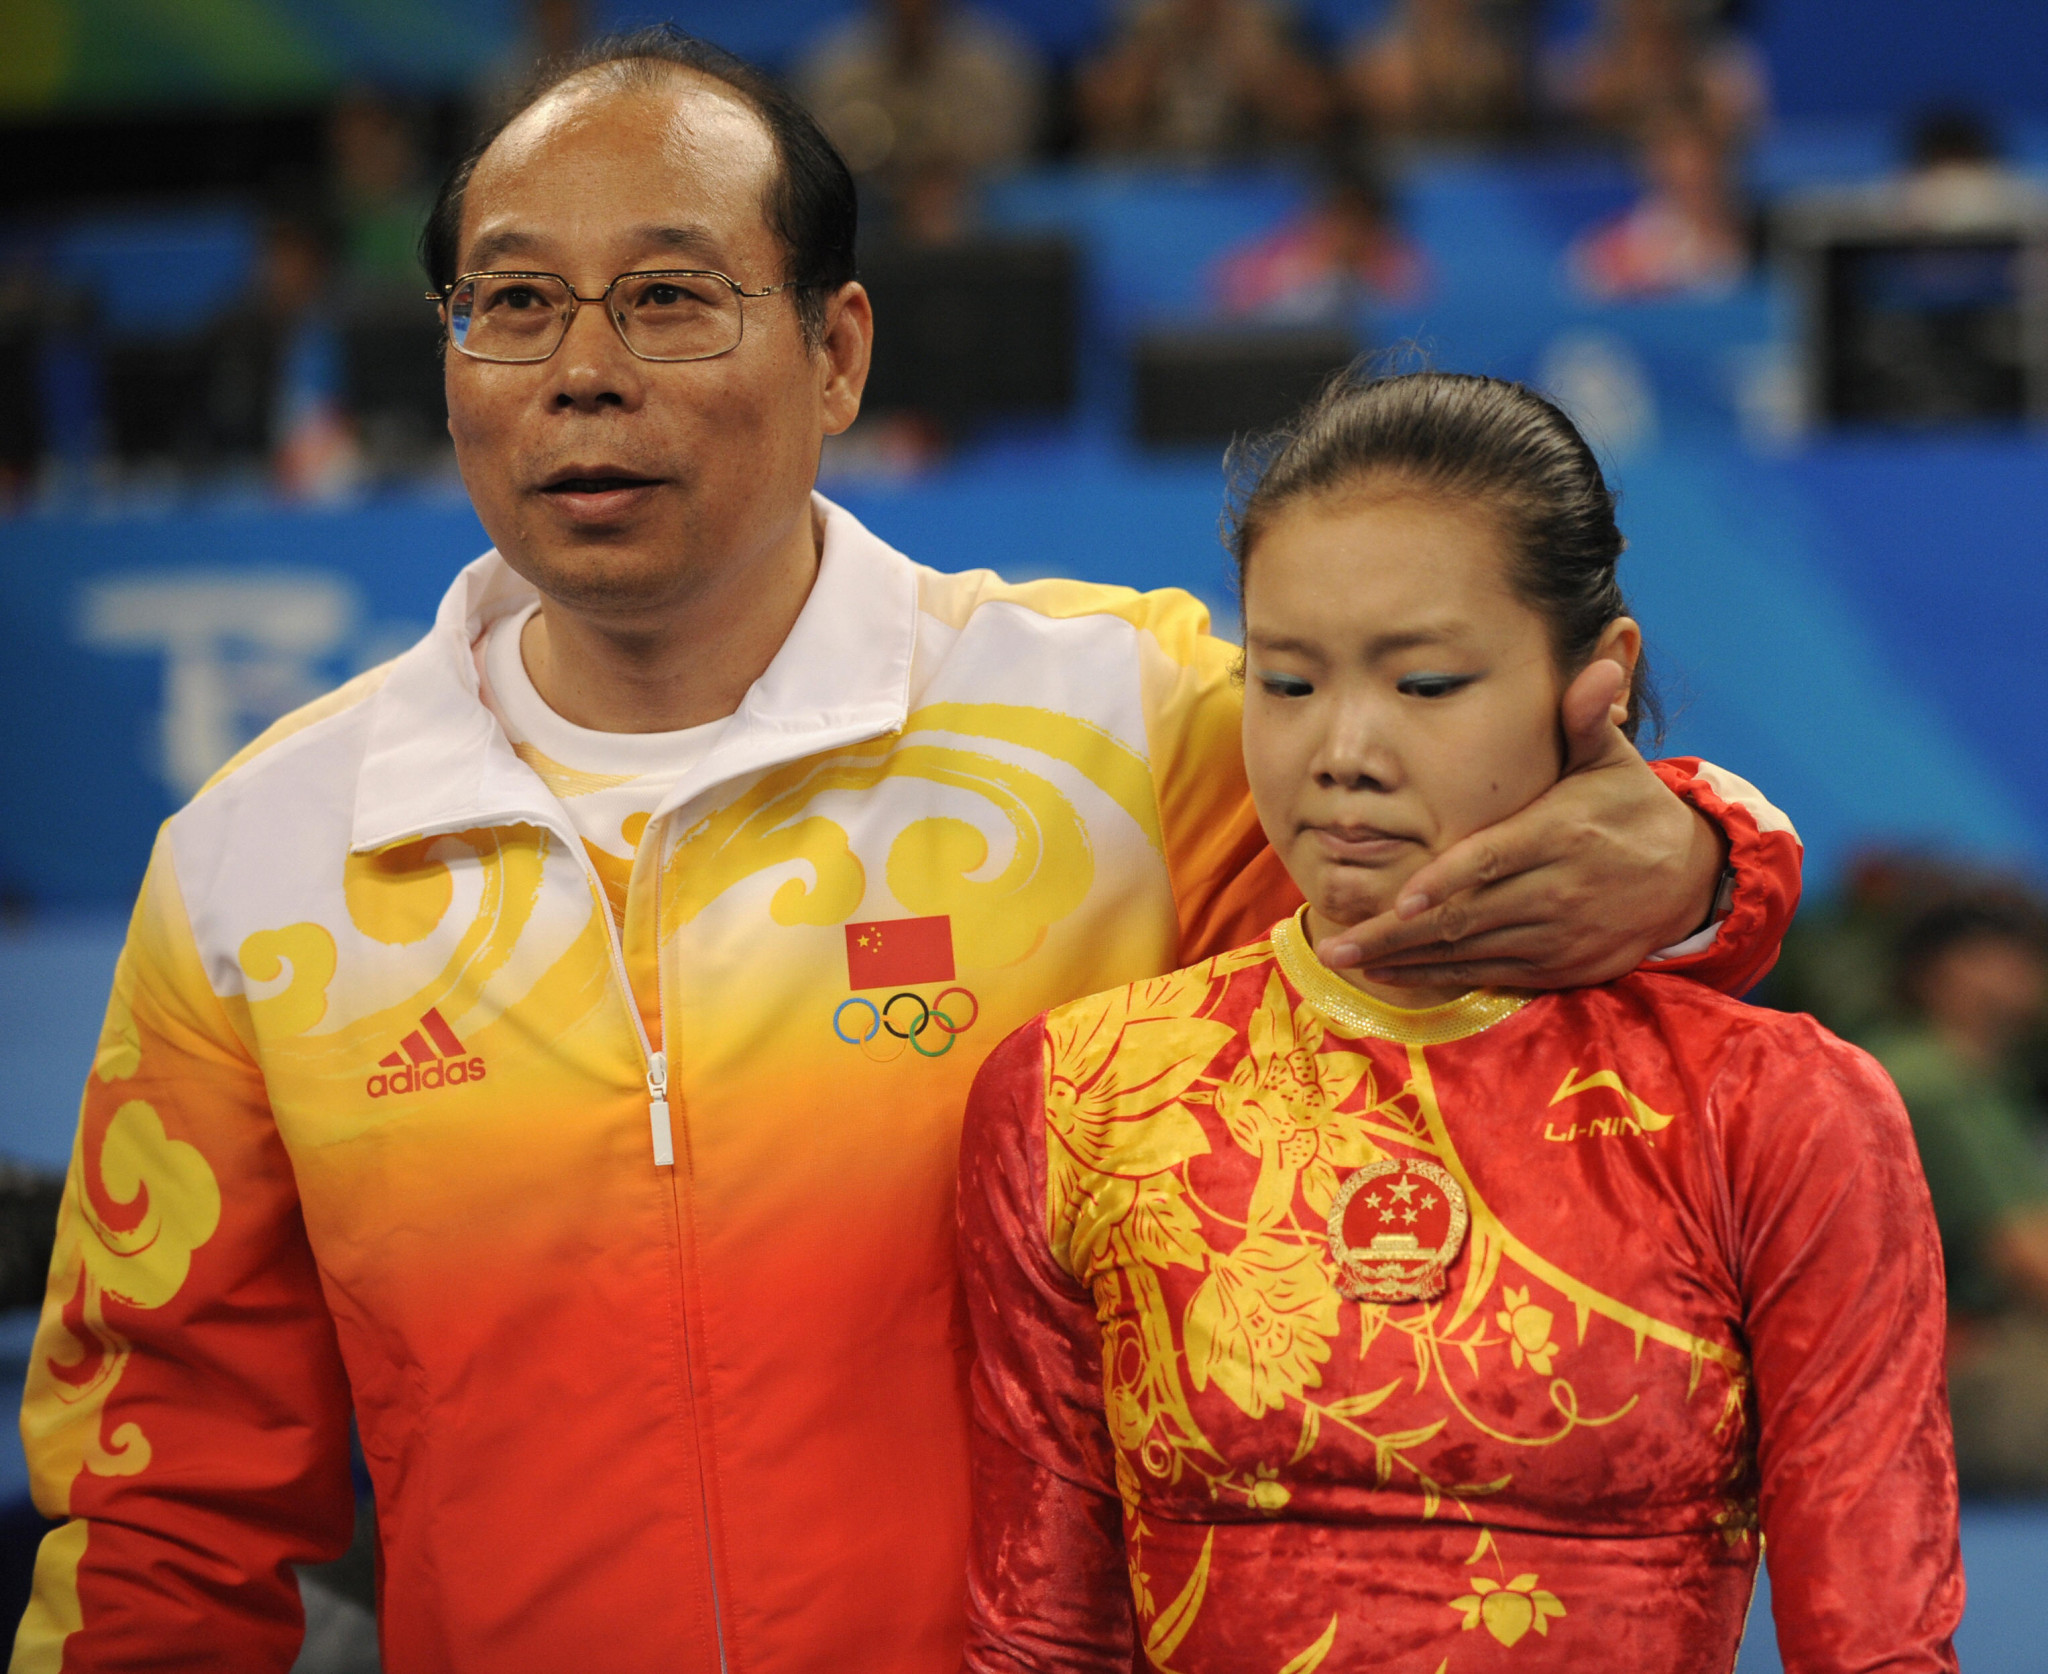 FIG pays tribute after death of acclaimed Chinese coach